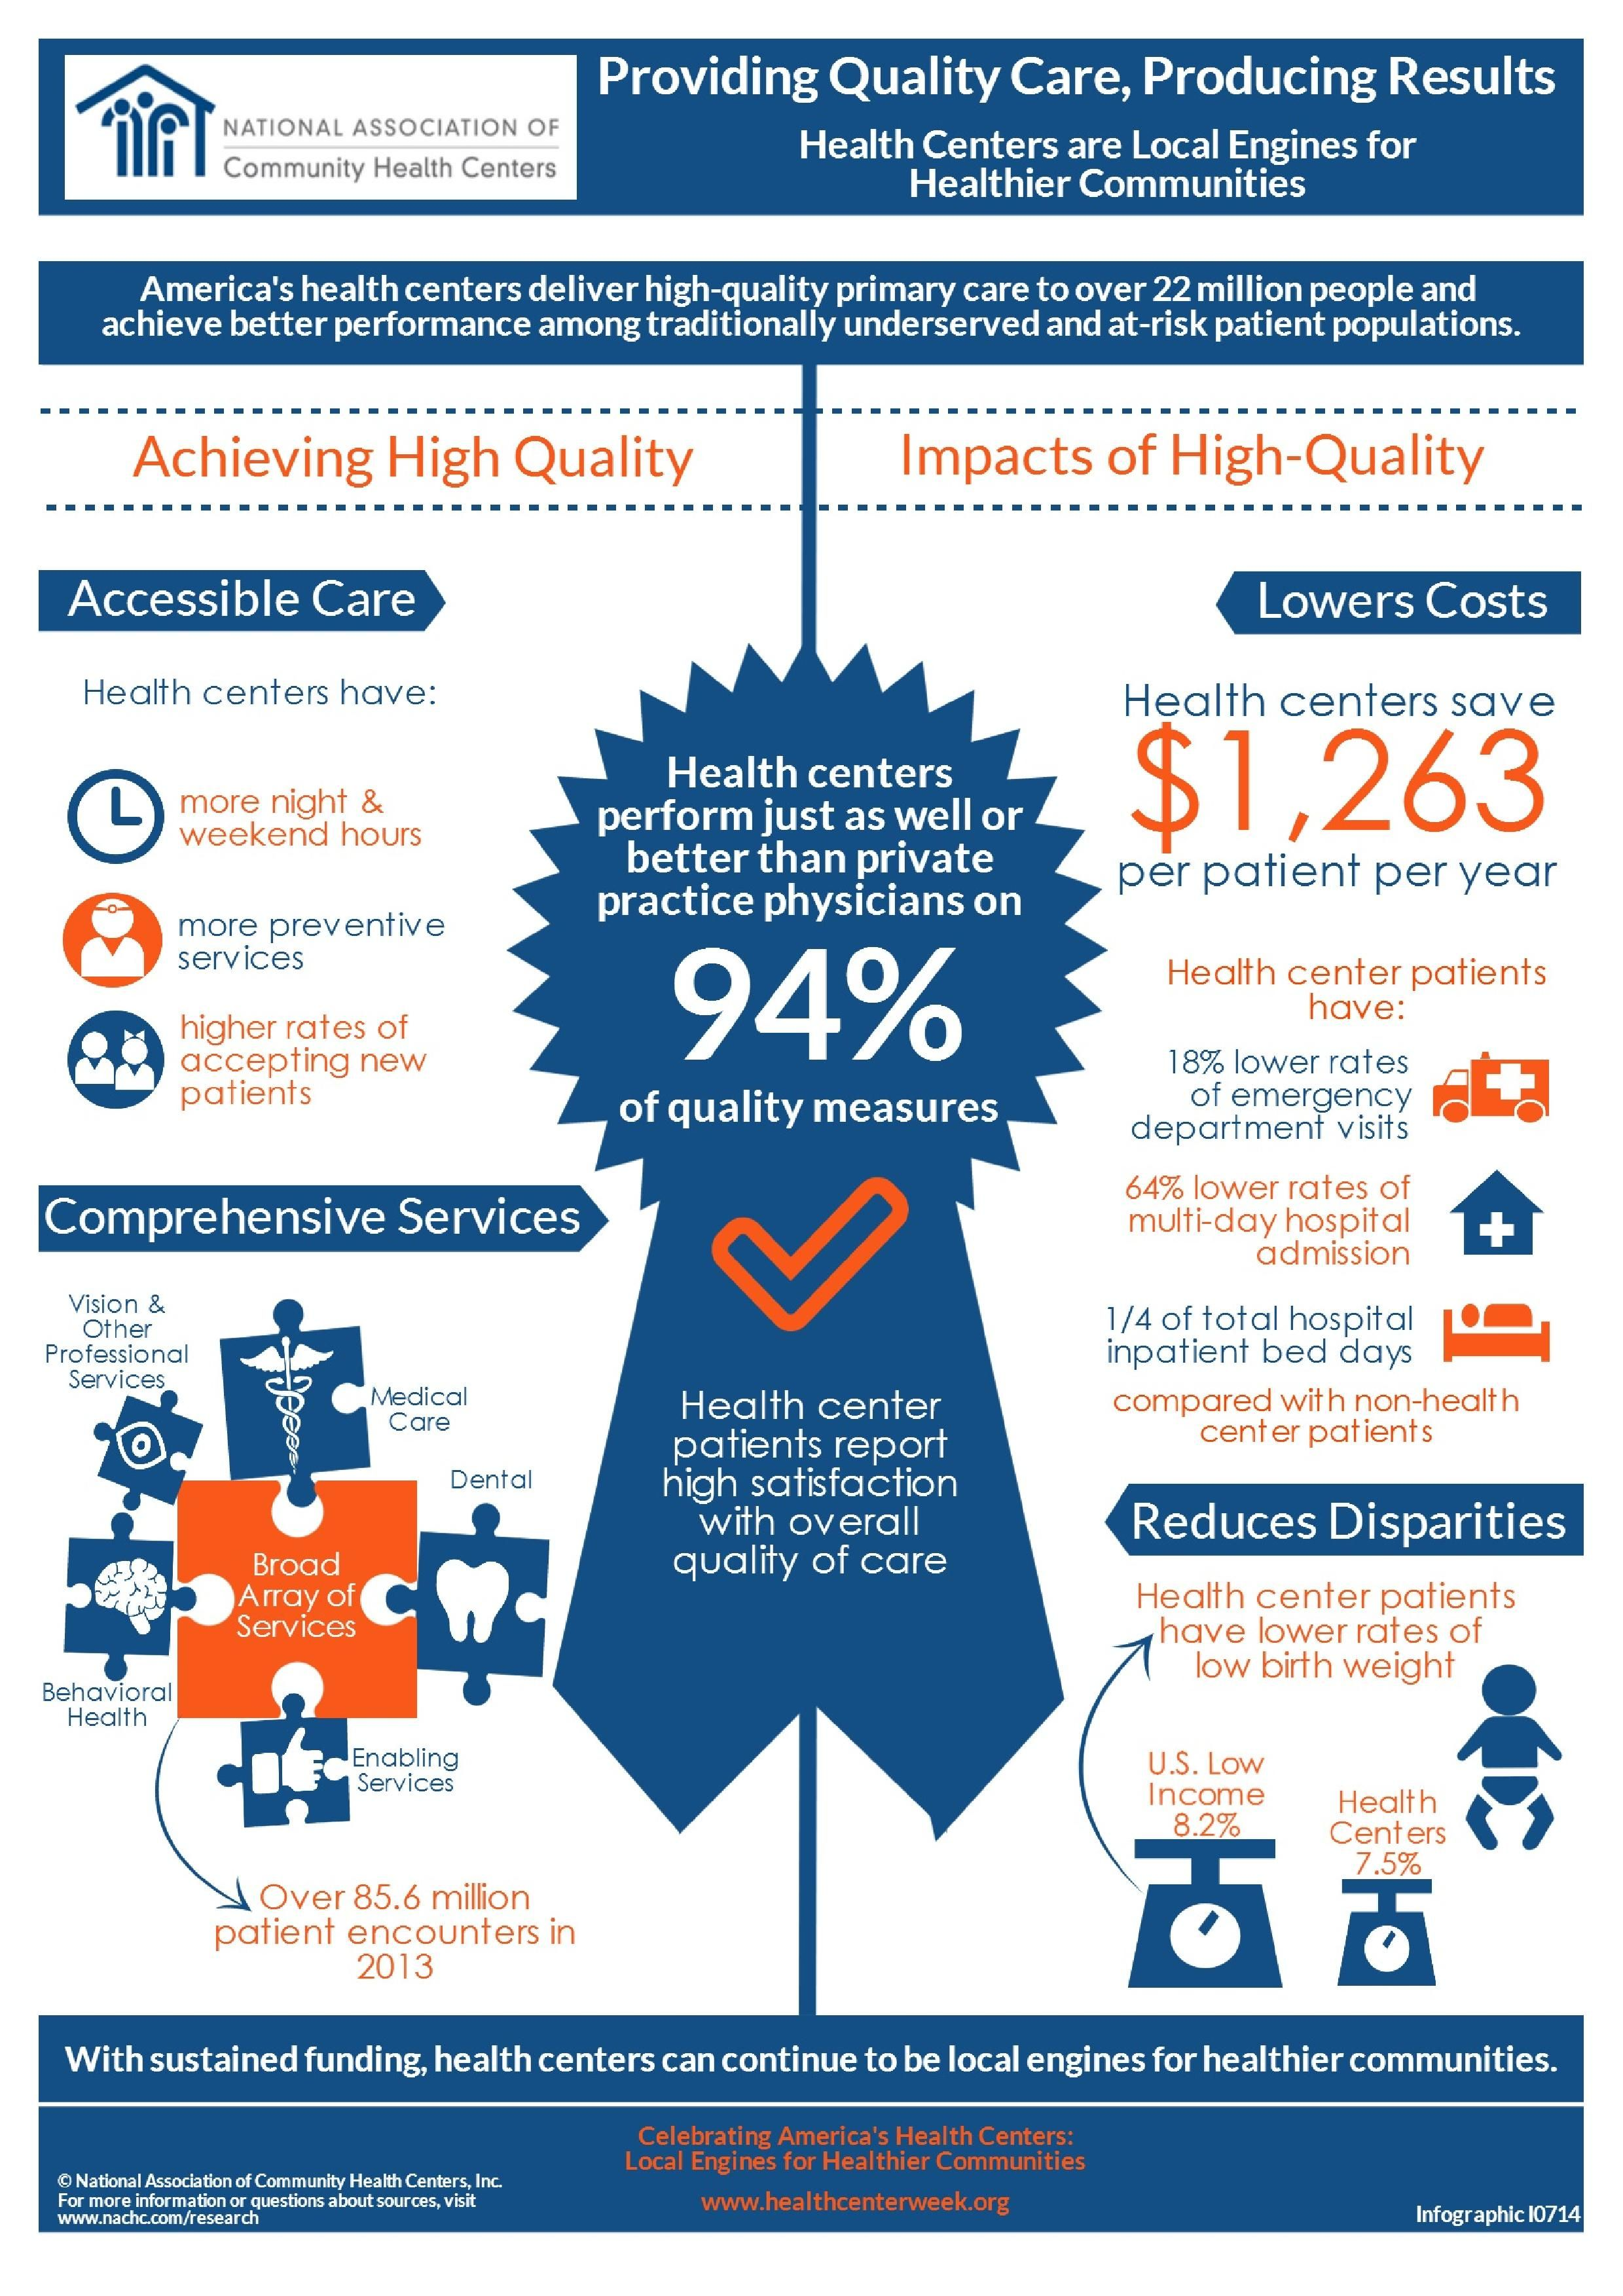 Health Centers are providing quality care, producing